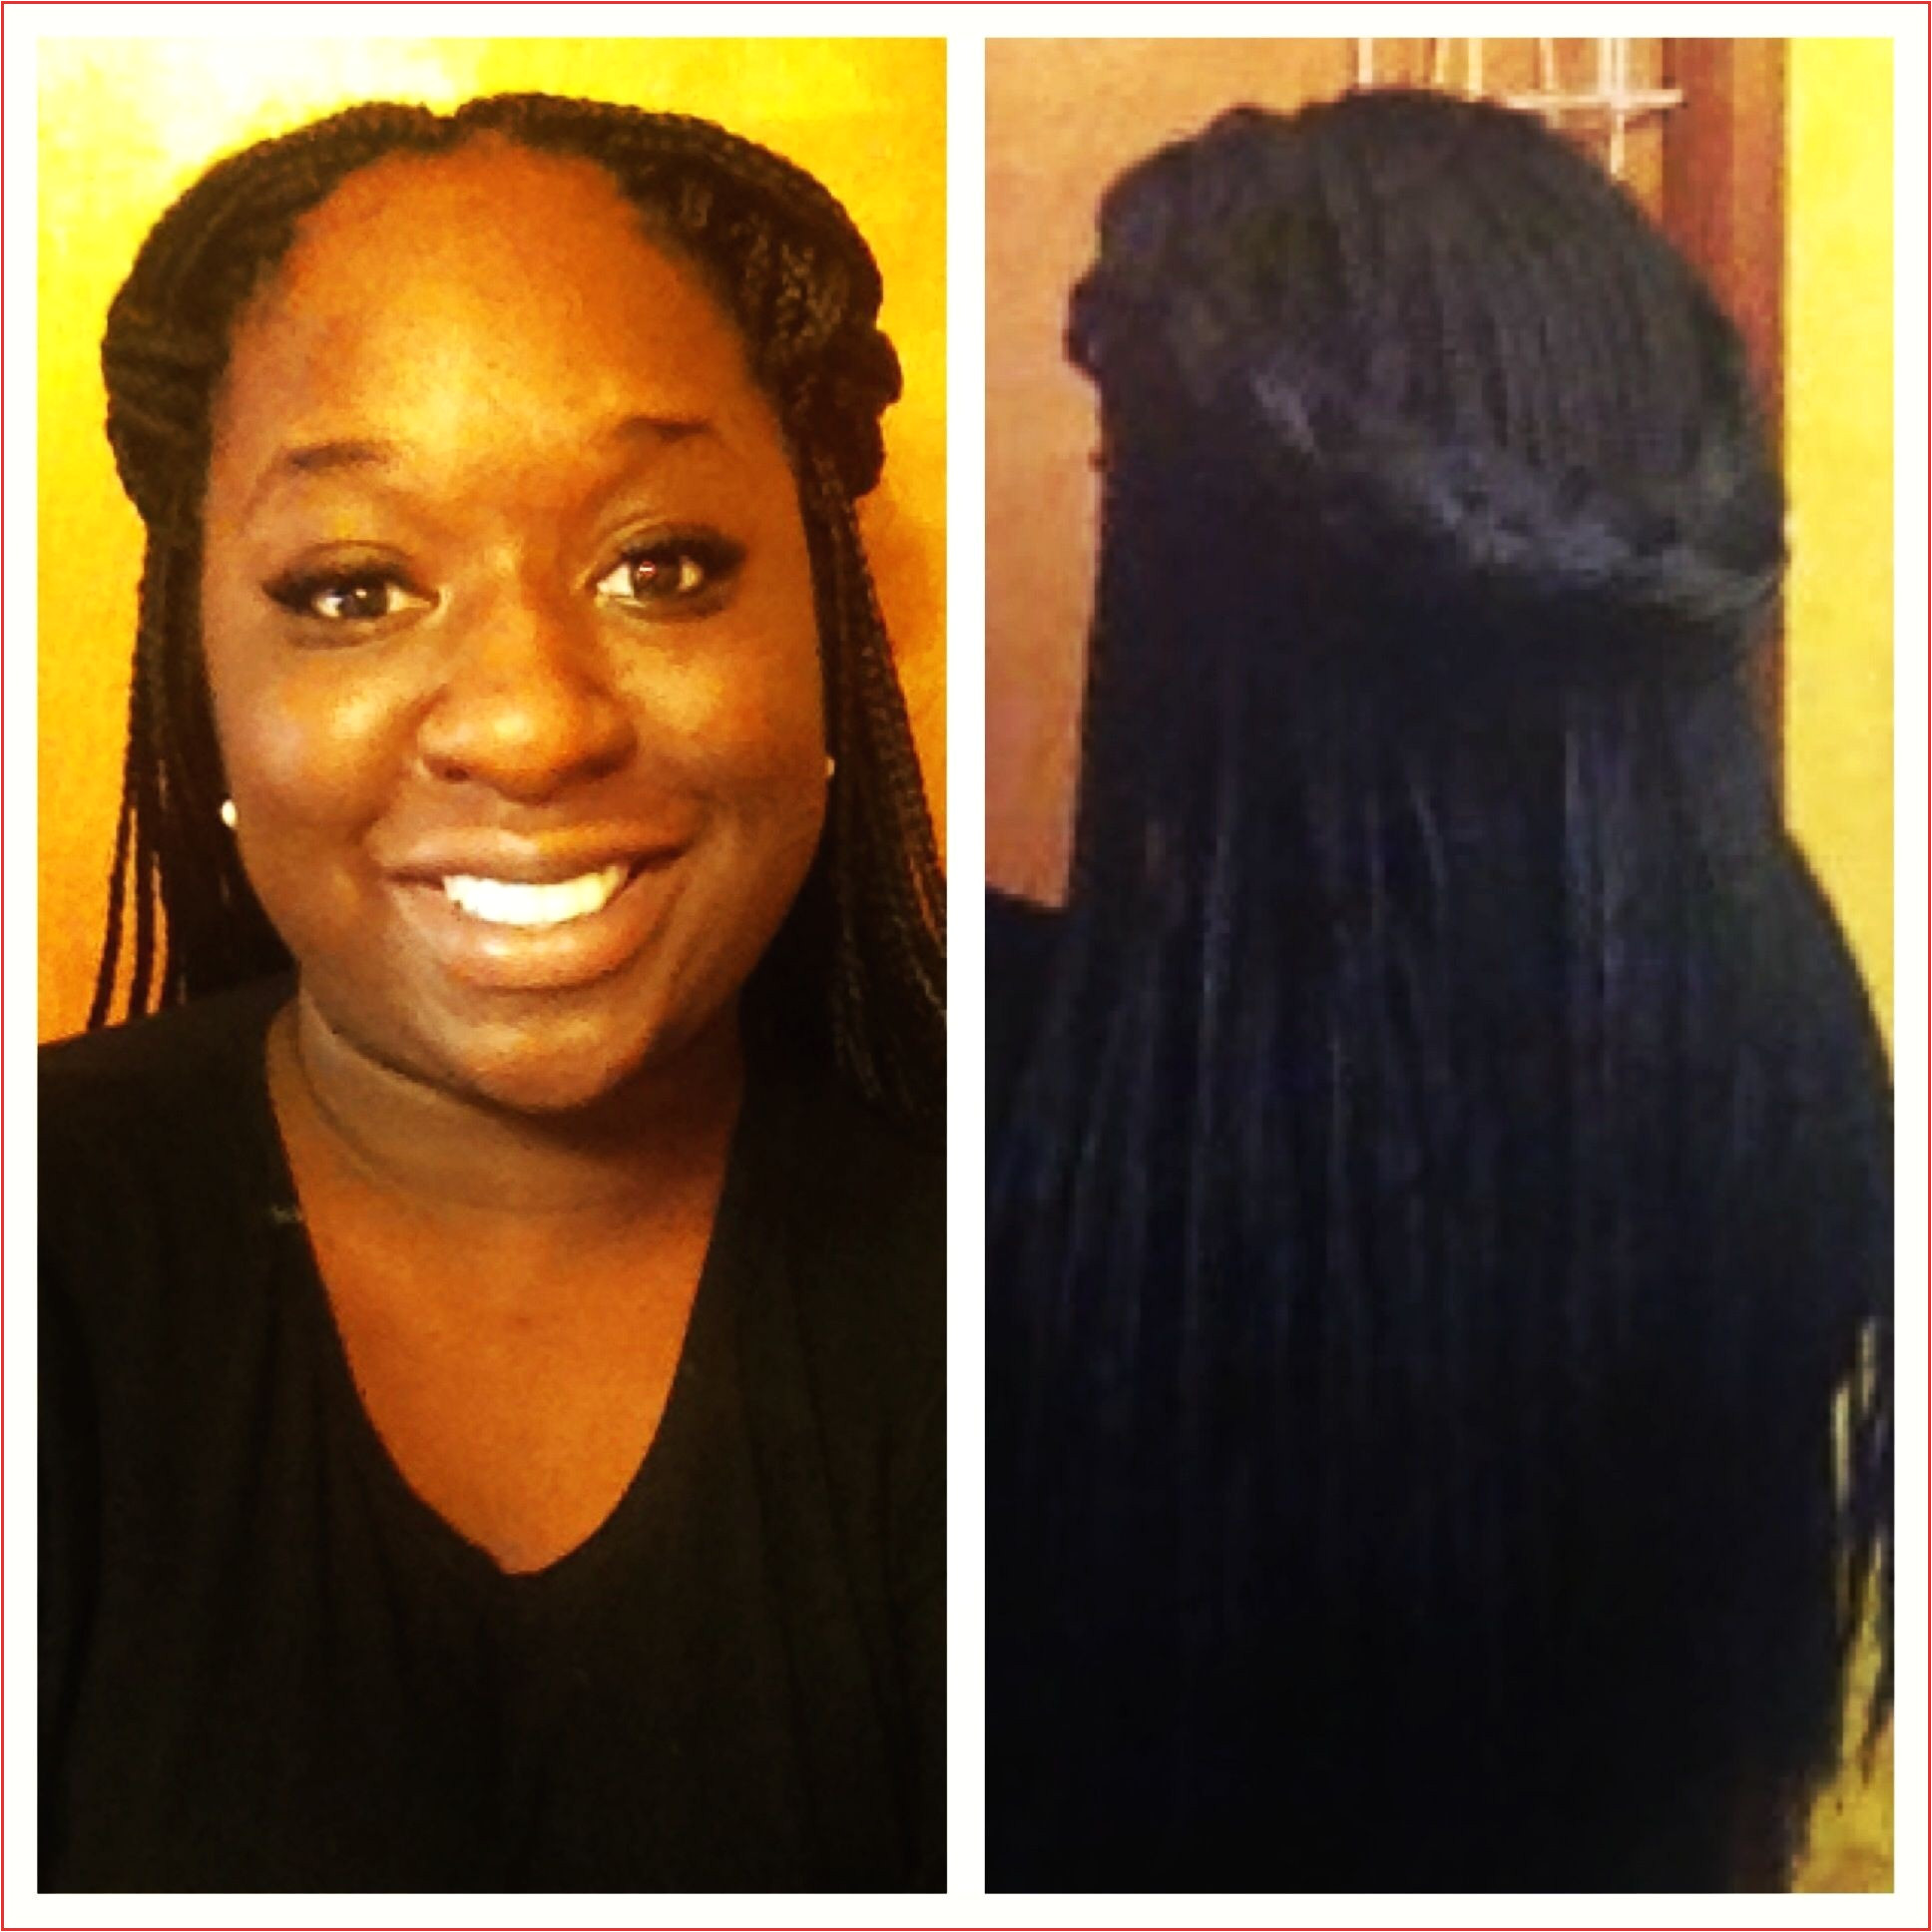 Hairstyles for Interviews Single Braids Updo Hairstyles Box Braids Updo Styles Very Curly Hairstyles